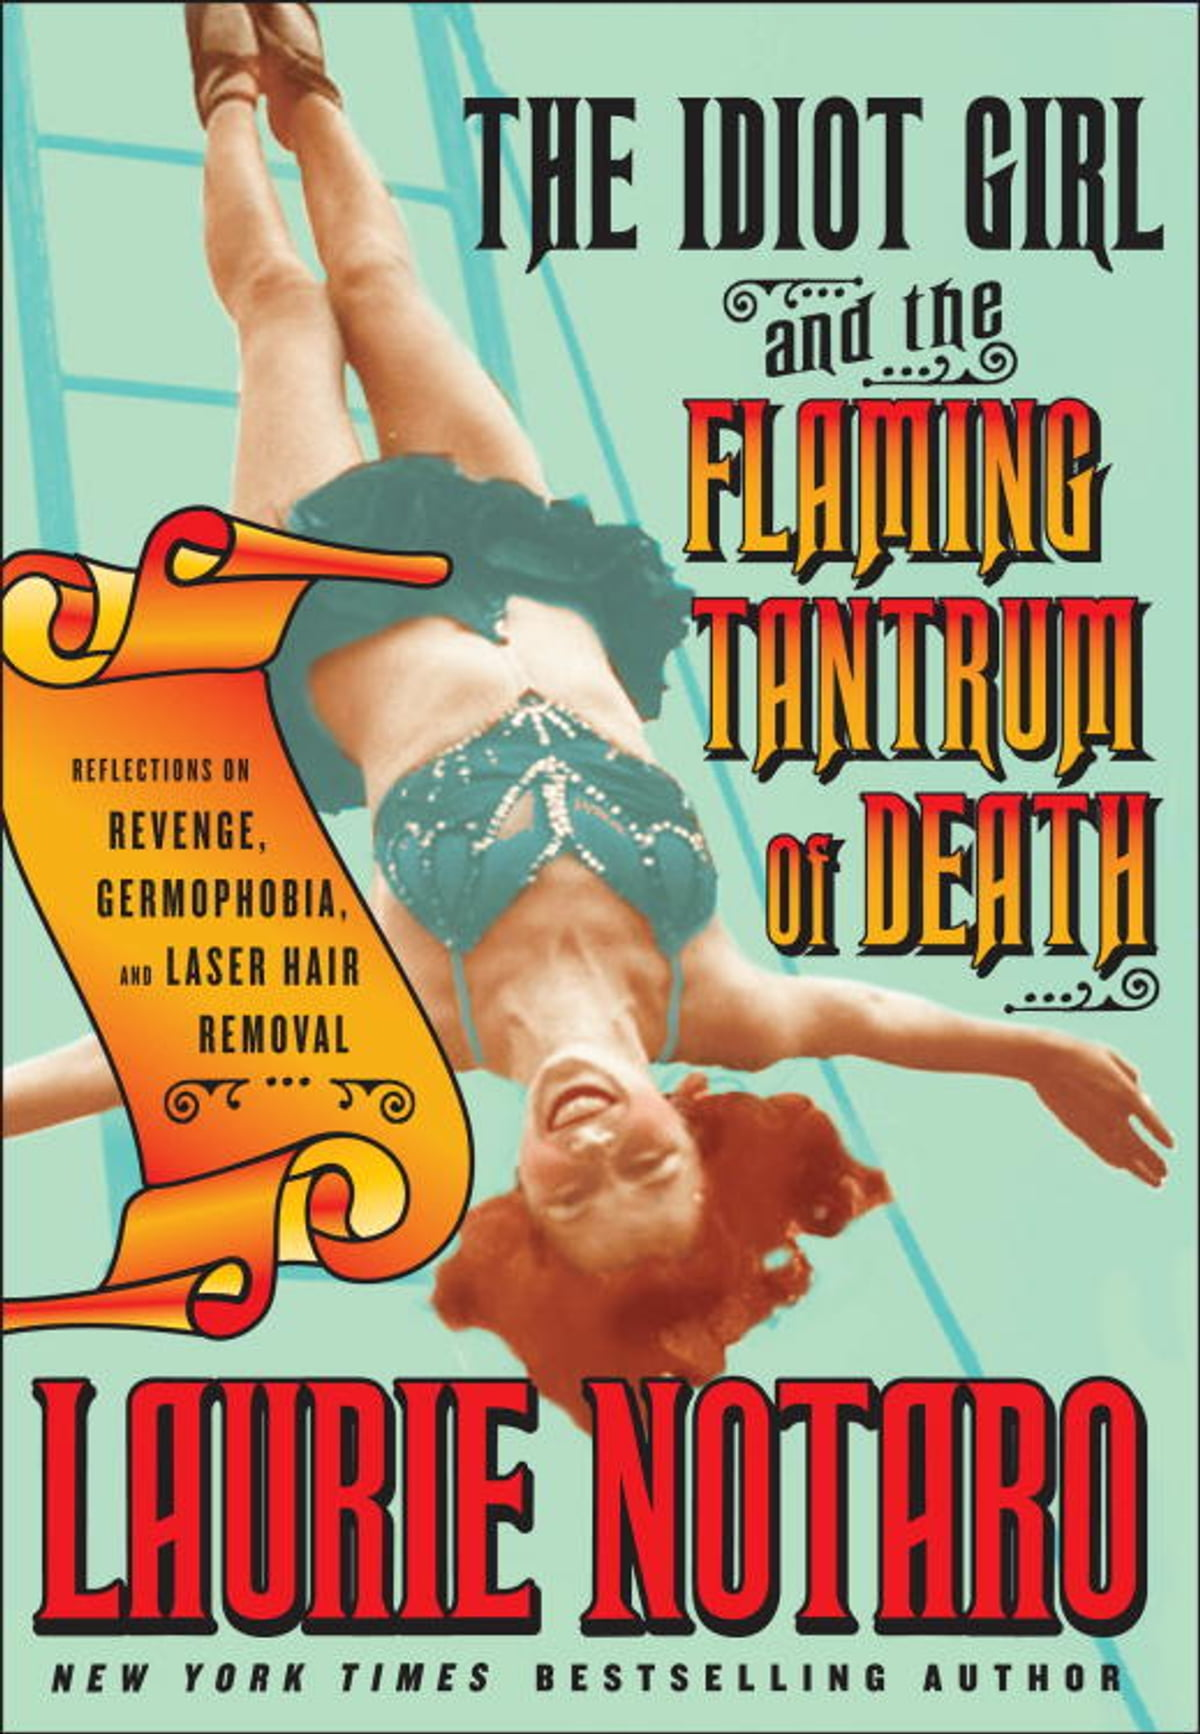 The idiot girl and the flaming tantrum of death ebook by laurie the idiot girl and the flaming tantrum of death ebook by laurie notaro 9780345507181 rakuten kobo fandeluxe Document